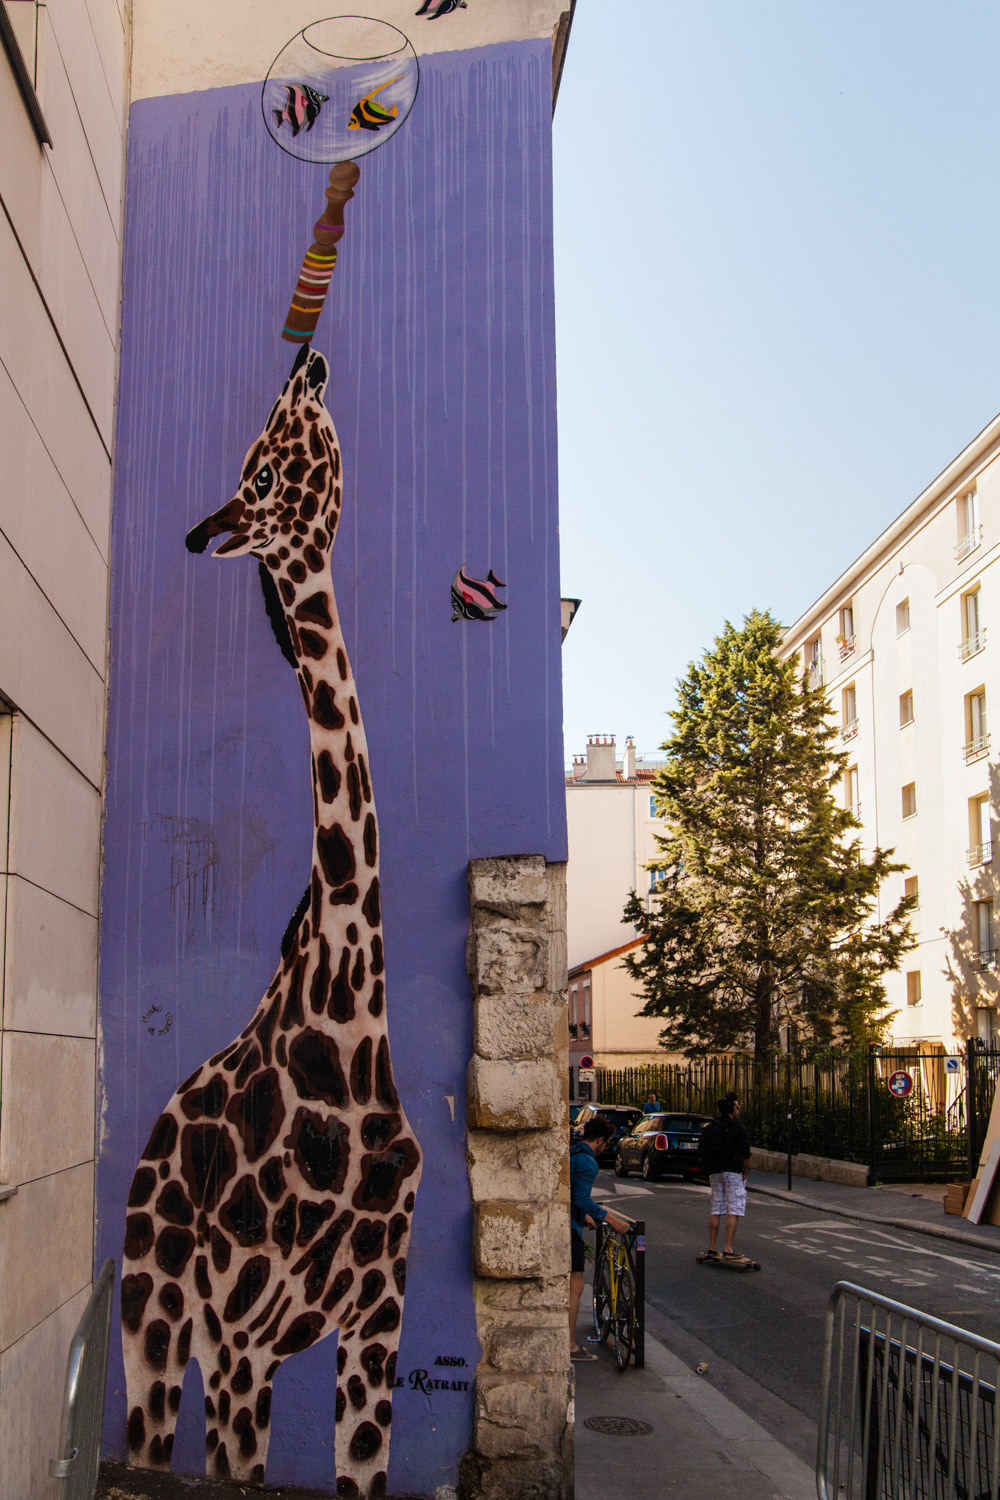 street art paris, street art mosko, girafe mosko, rue du retrait paris, rue du retrait